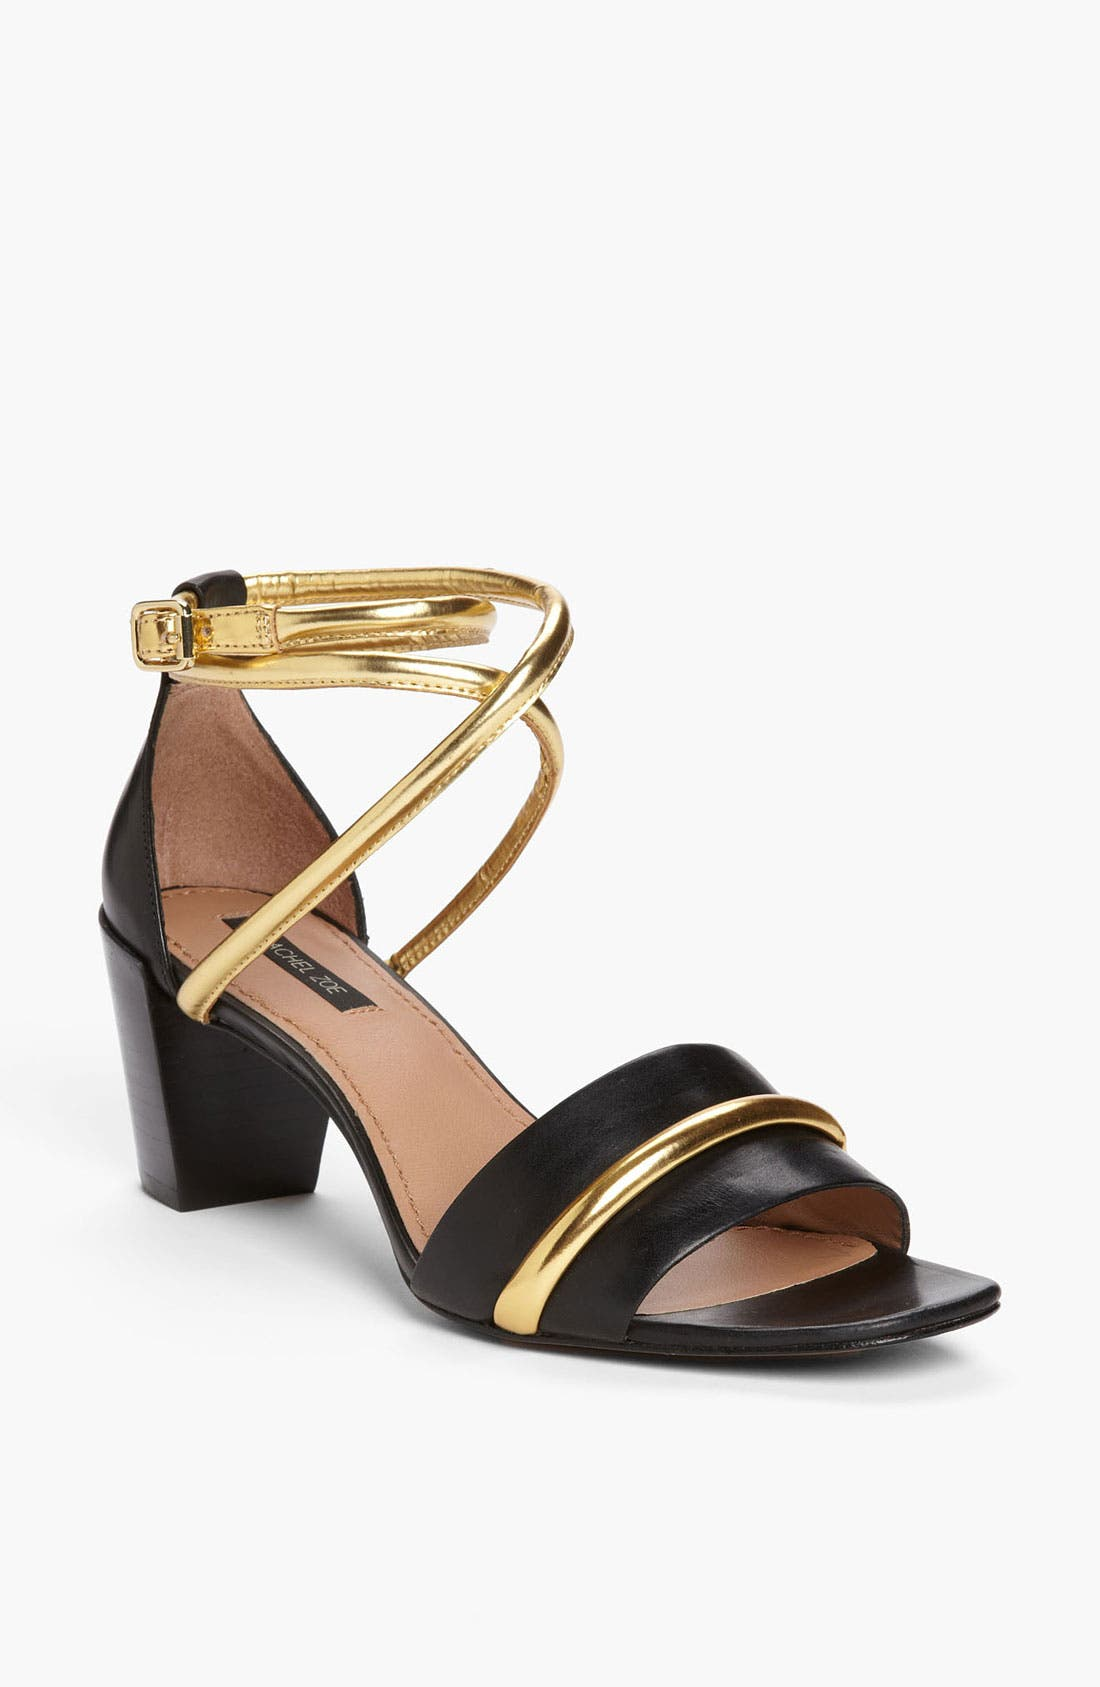 Alternate Image 1 Selected - Rachel Zoe 'Montana' Sandal